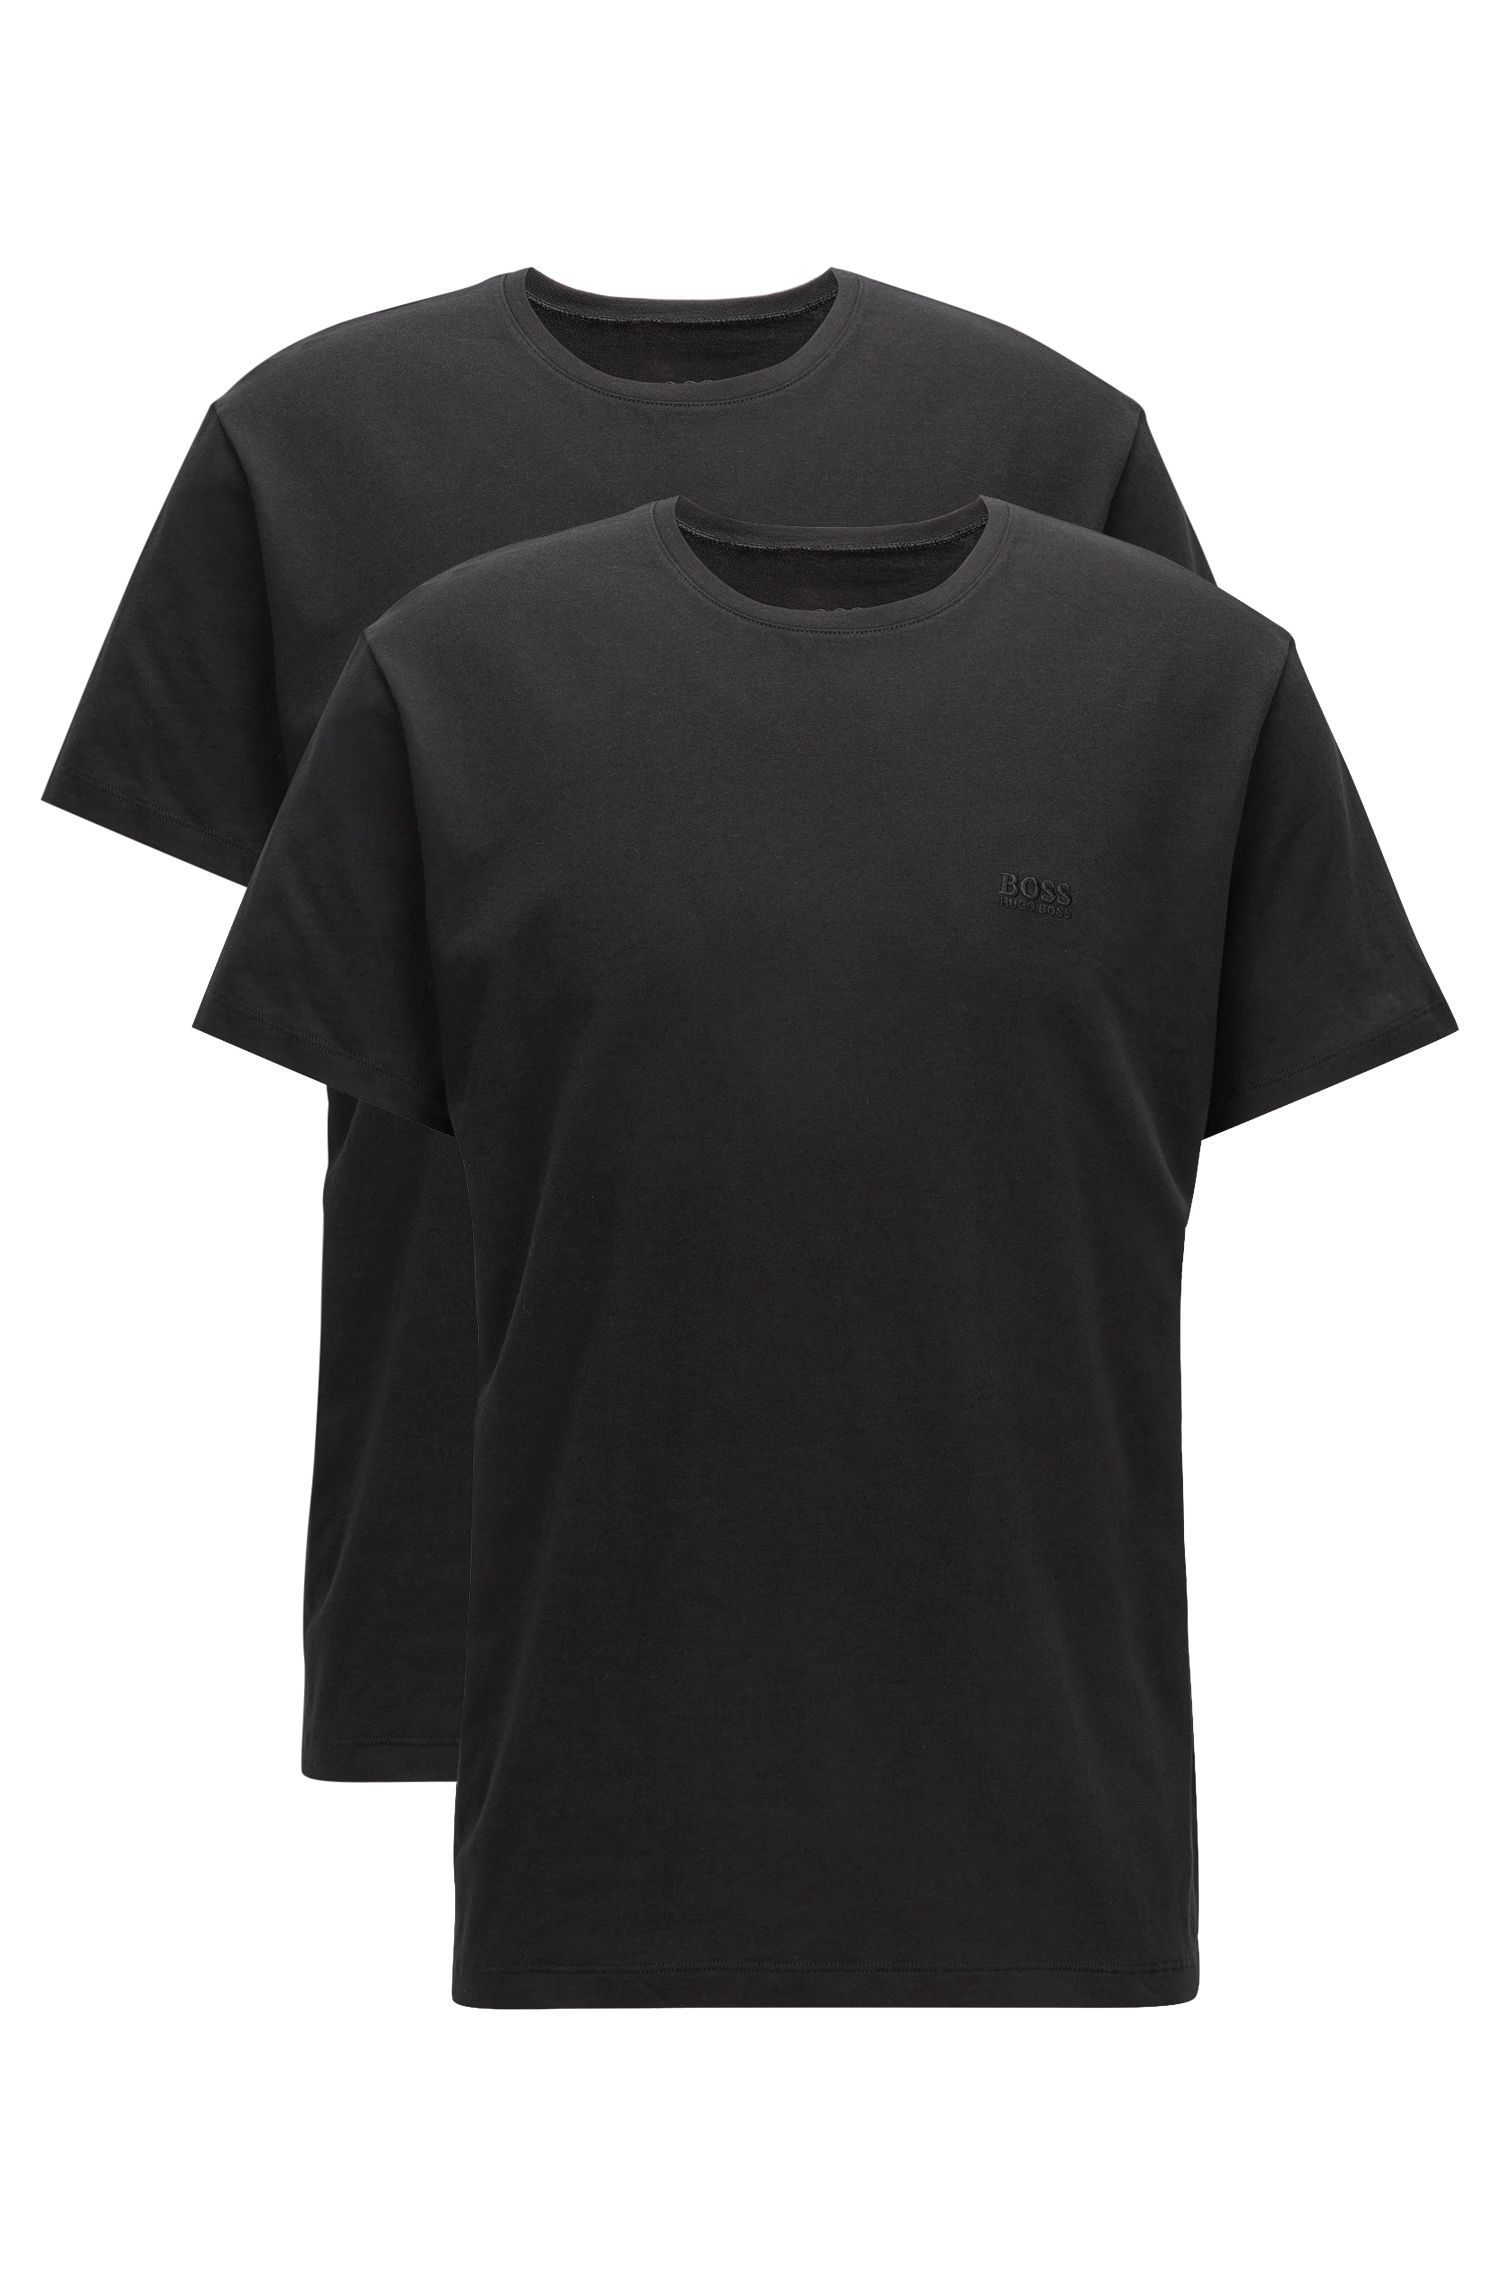 Two-pack of relaxed-fit crew-neck cotton T-shirts